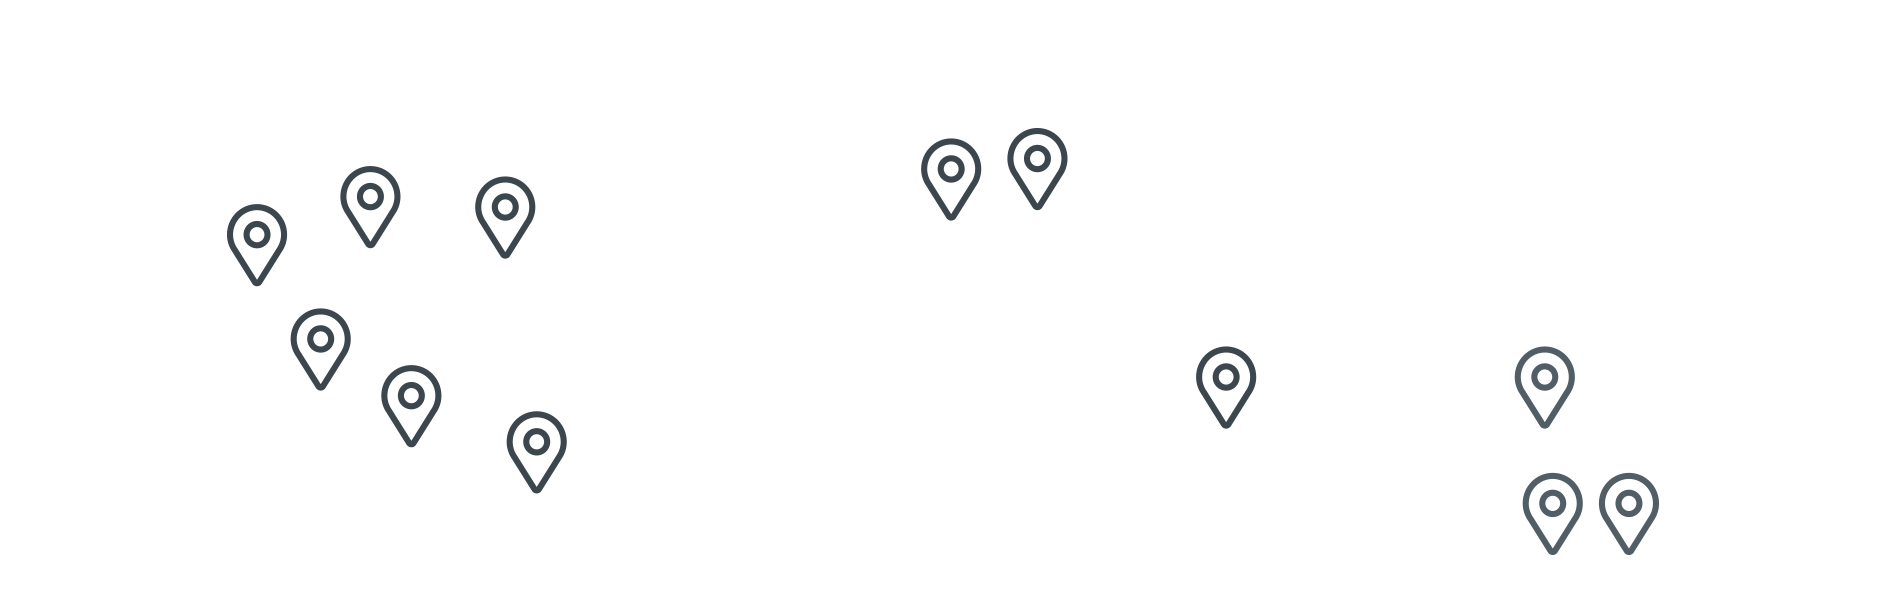 list-map-markers.png